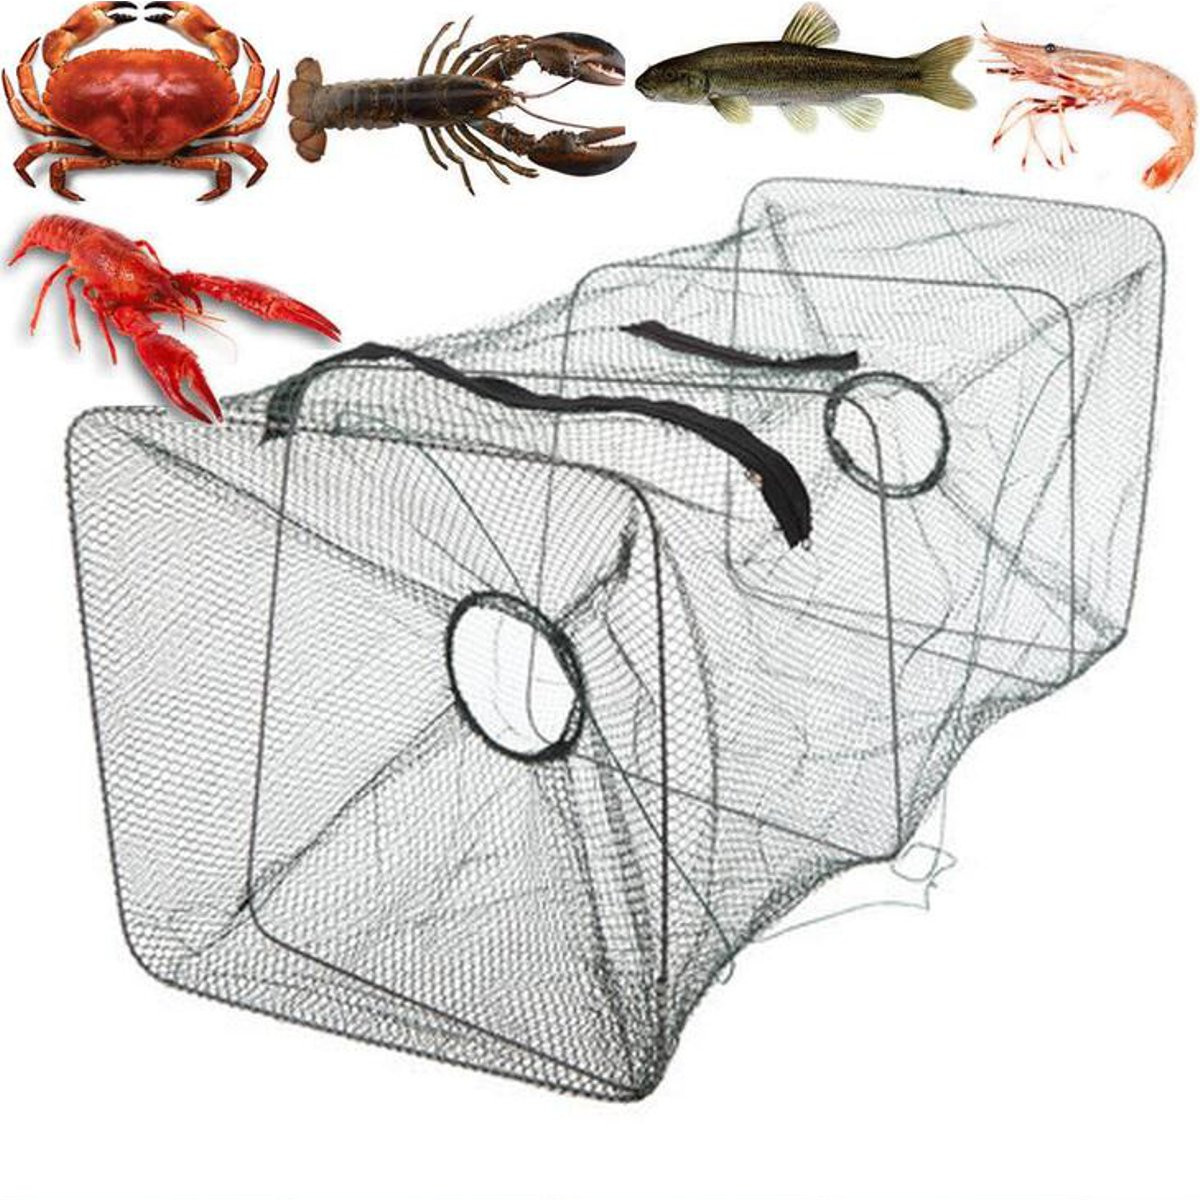 Fishing Net Foldable Crab Net Trap Cast Dip Cage Fishing Bait Fish Minnow Crawfish Shrimp (Size: 21x20.5x 45cm)